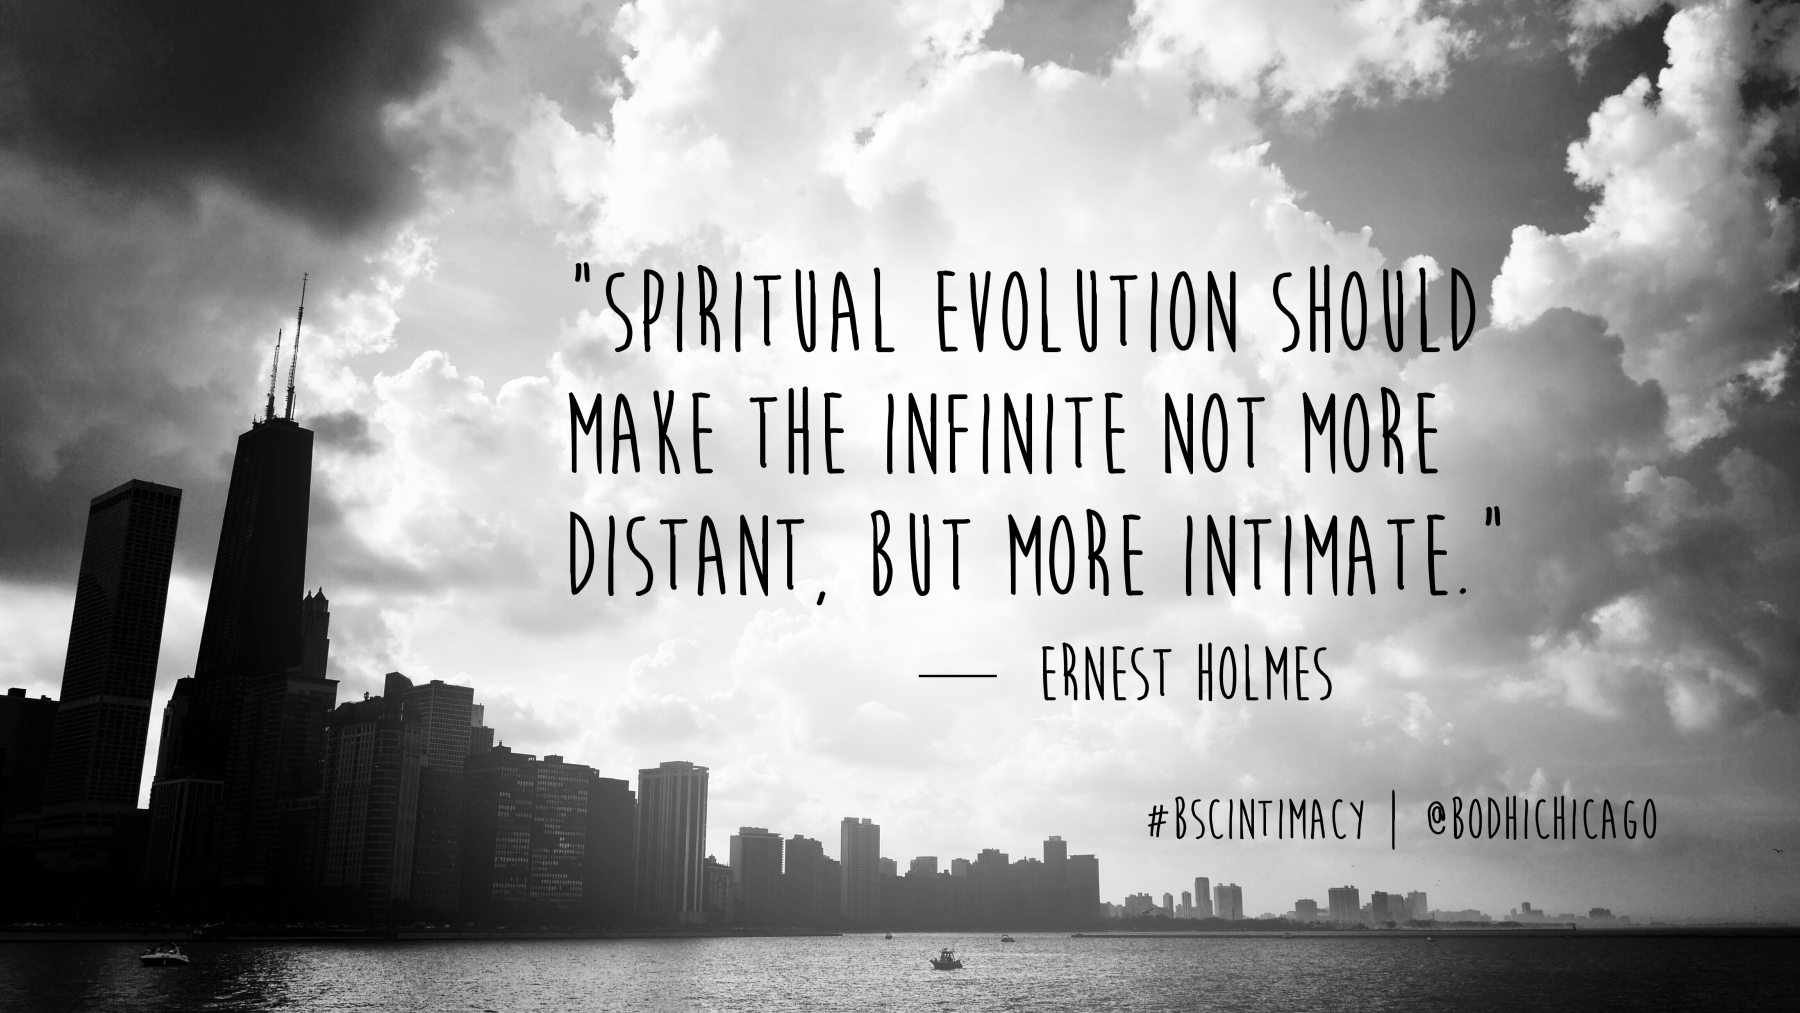 ernest-holmes-intimacy-quote-05.18.15-1800